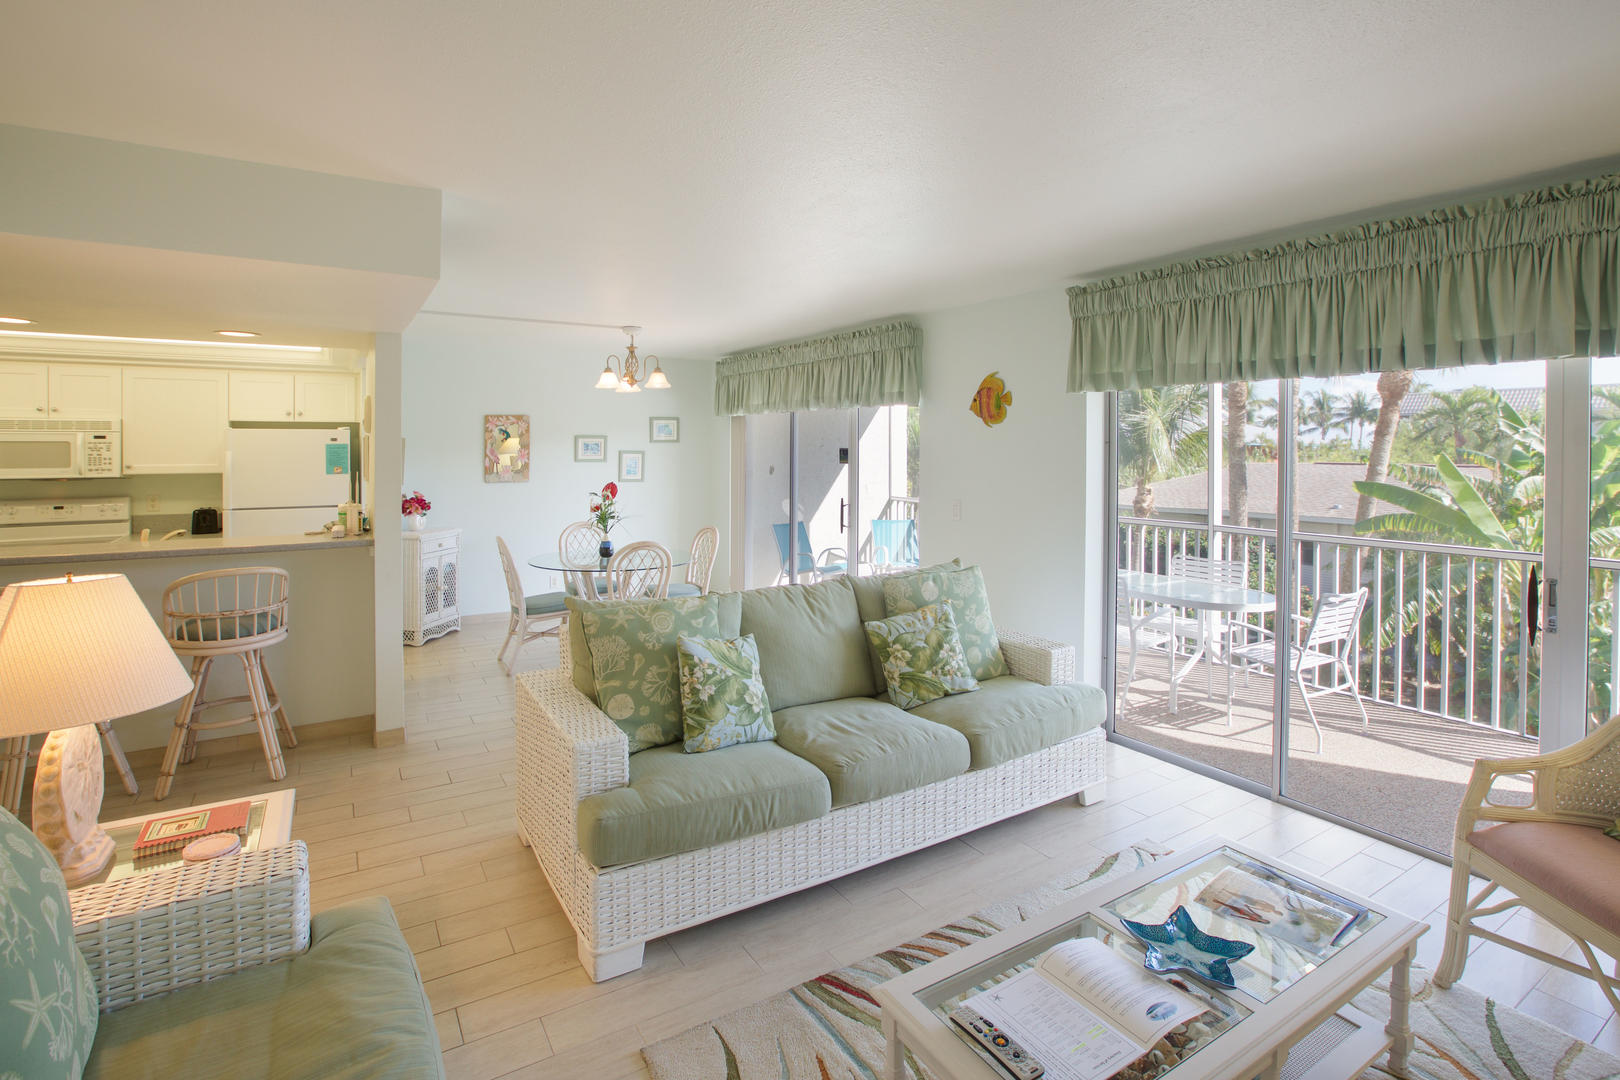 Sanibel Siesta on the Beach unit 104-104G